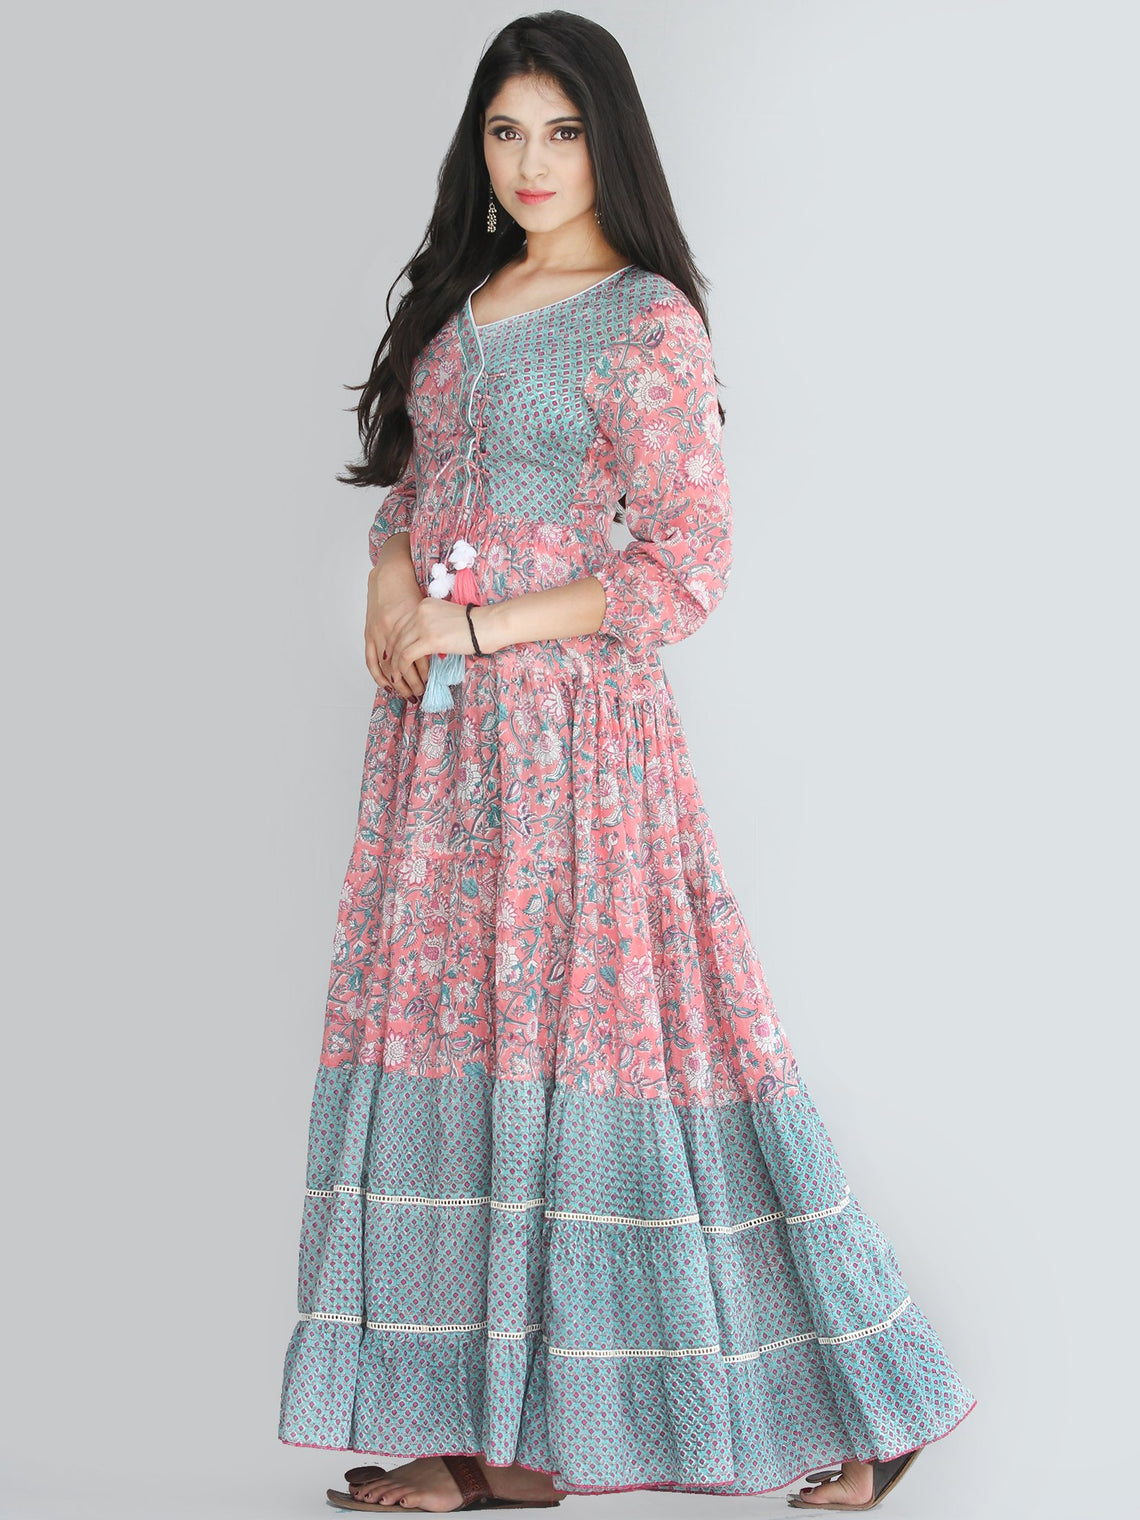 Gulzar Nohreen - Coral Hand Block Printed Tiered Long Angrakha Dress With Lace & Tassels - D409F2168